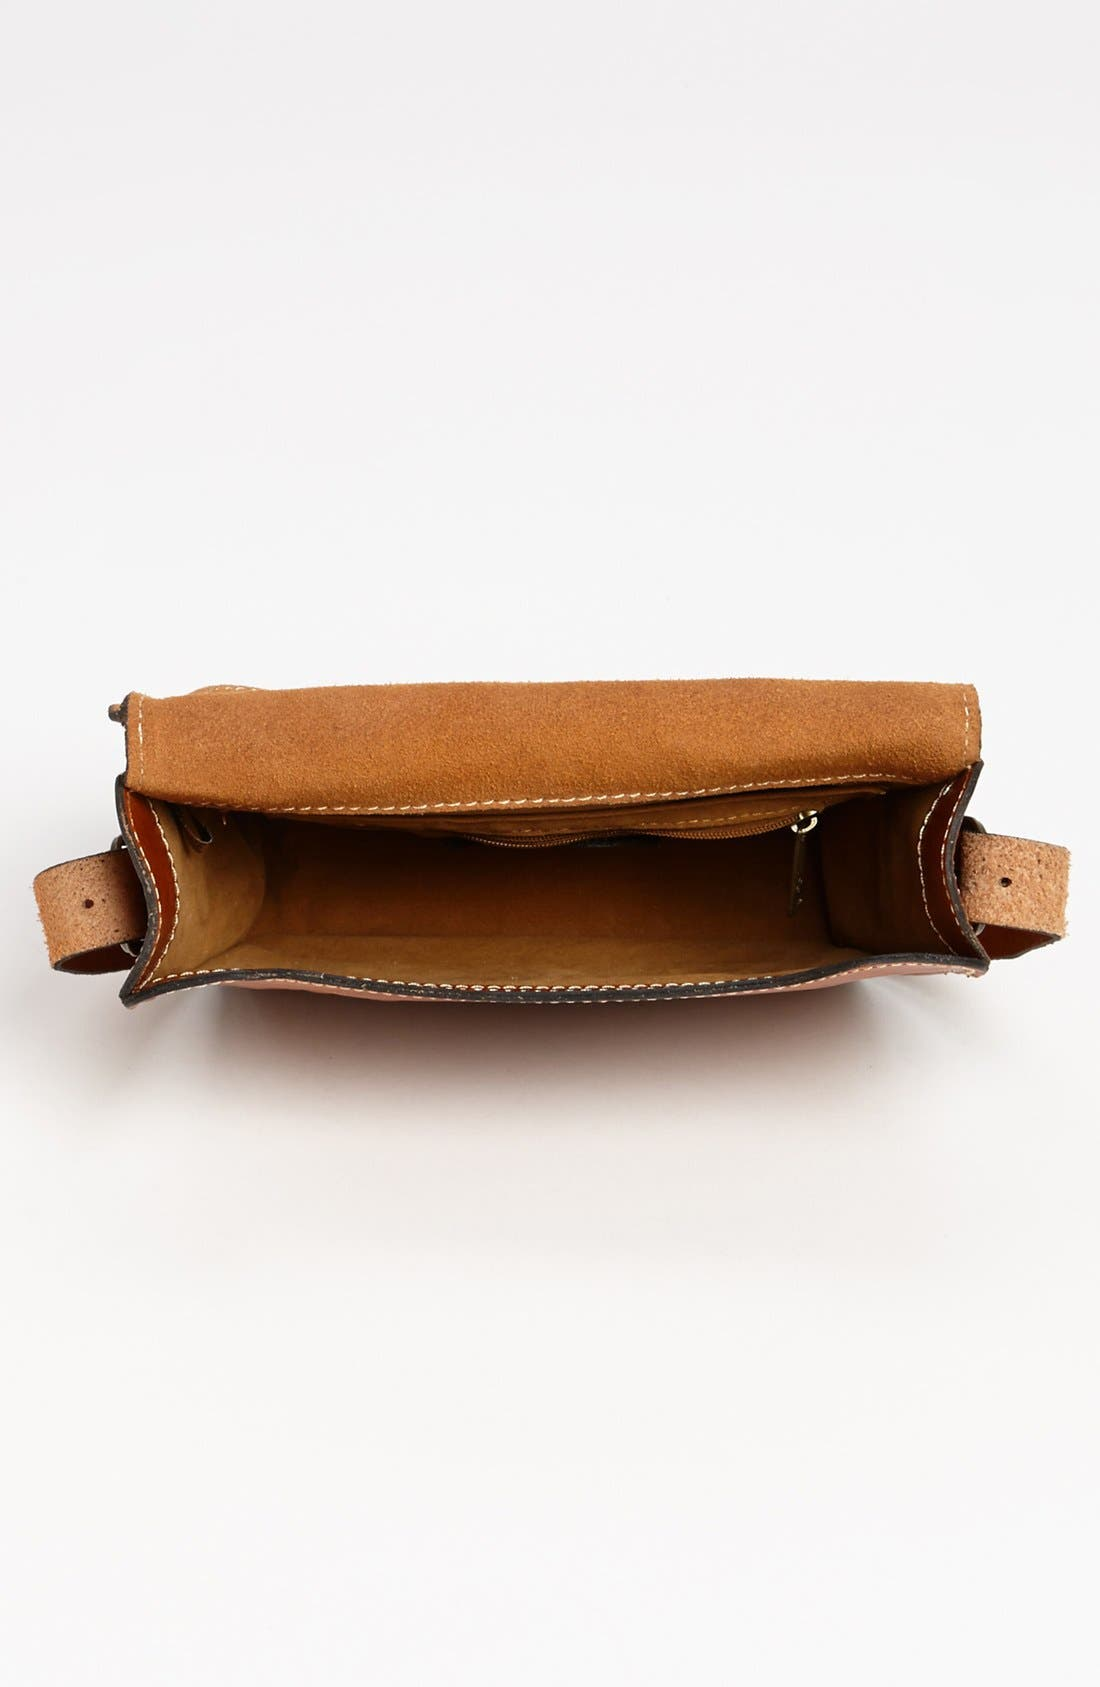 Alternate Image 3  - Patricia Nash 'Marciano' Leather Crossbody Bag